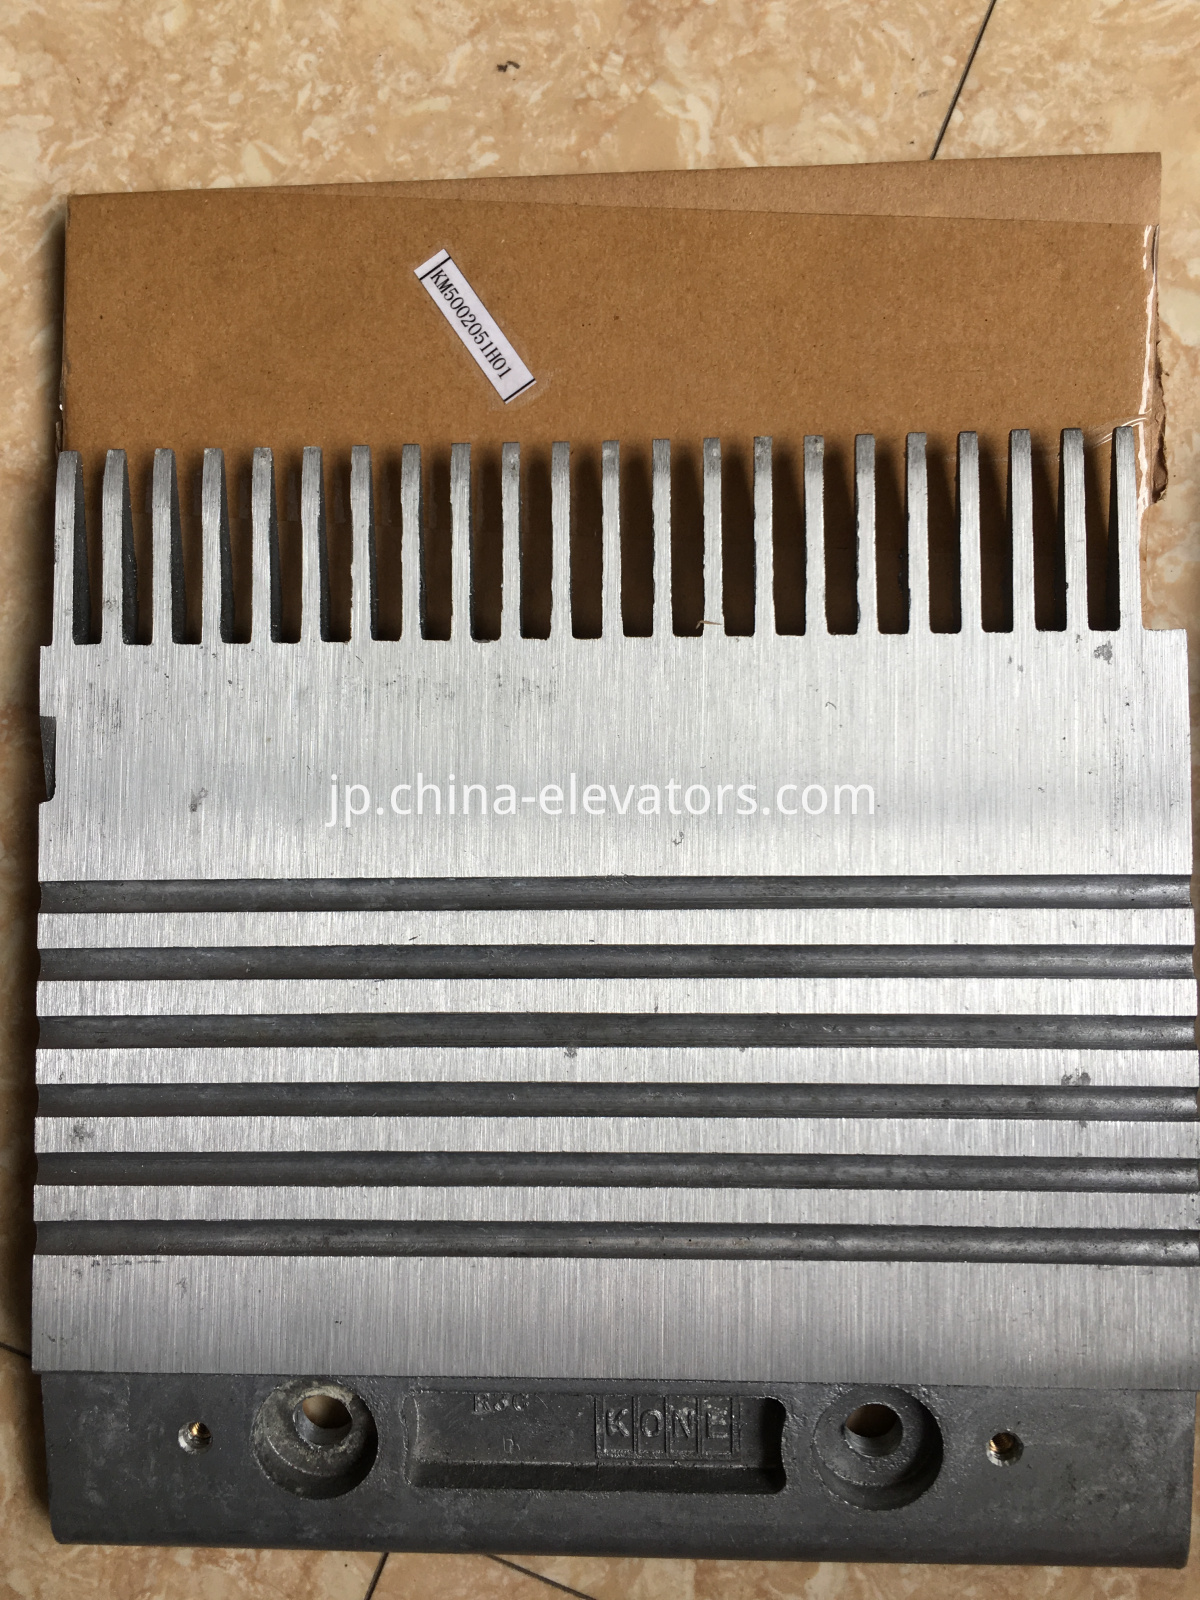 R3C Aluminium Alloy Combs for KONE Escalators, Right